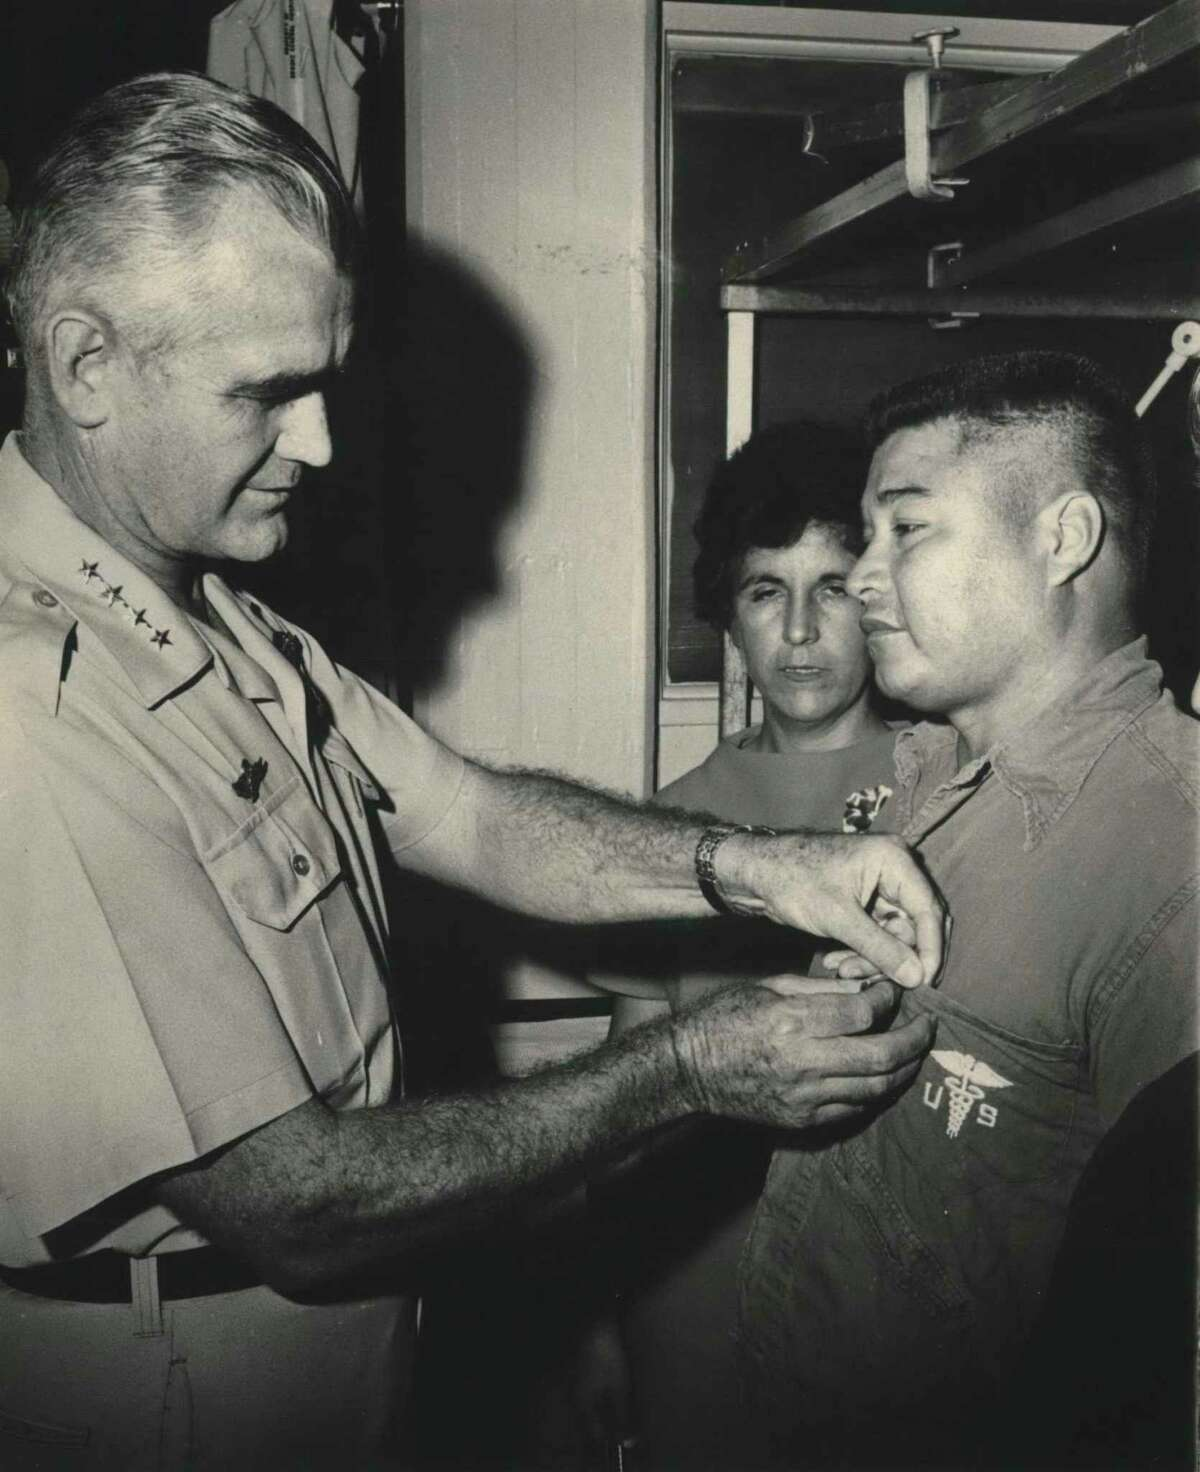 General William C. Westmoreland, Army Chief of Staff, former Commander of Allied Forces in Vietnam, pins Staff Sergeant Roy P. Benavidez at El Campo